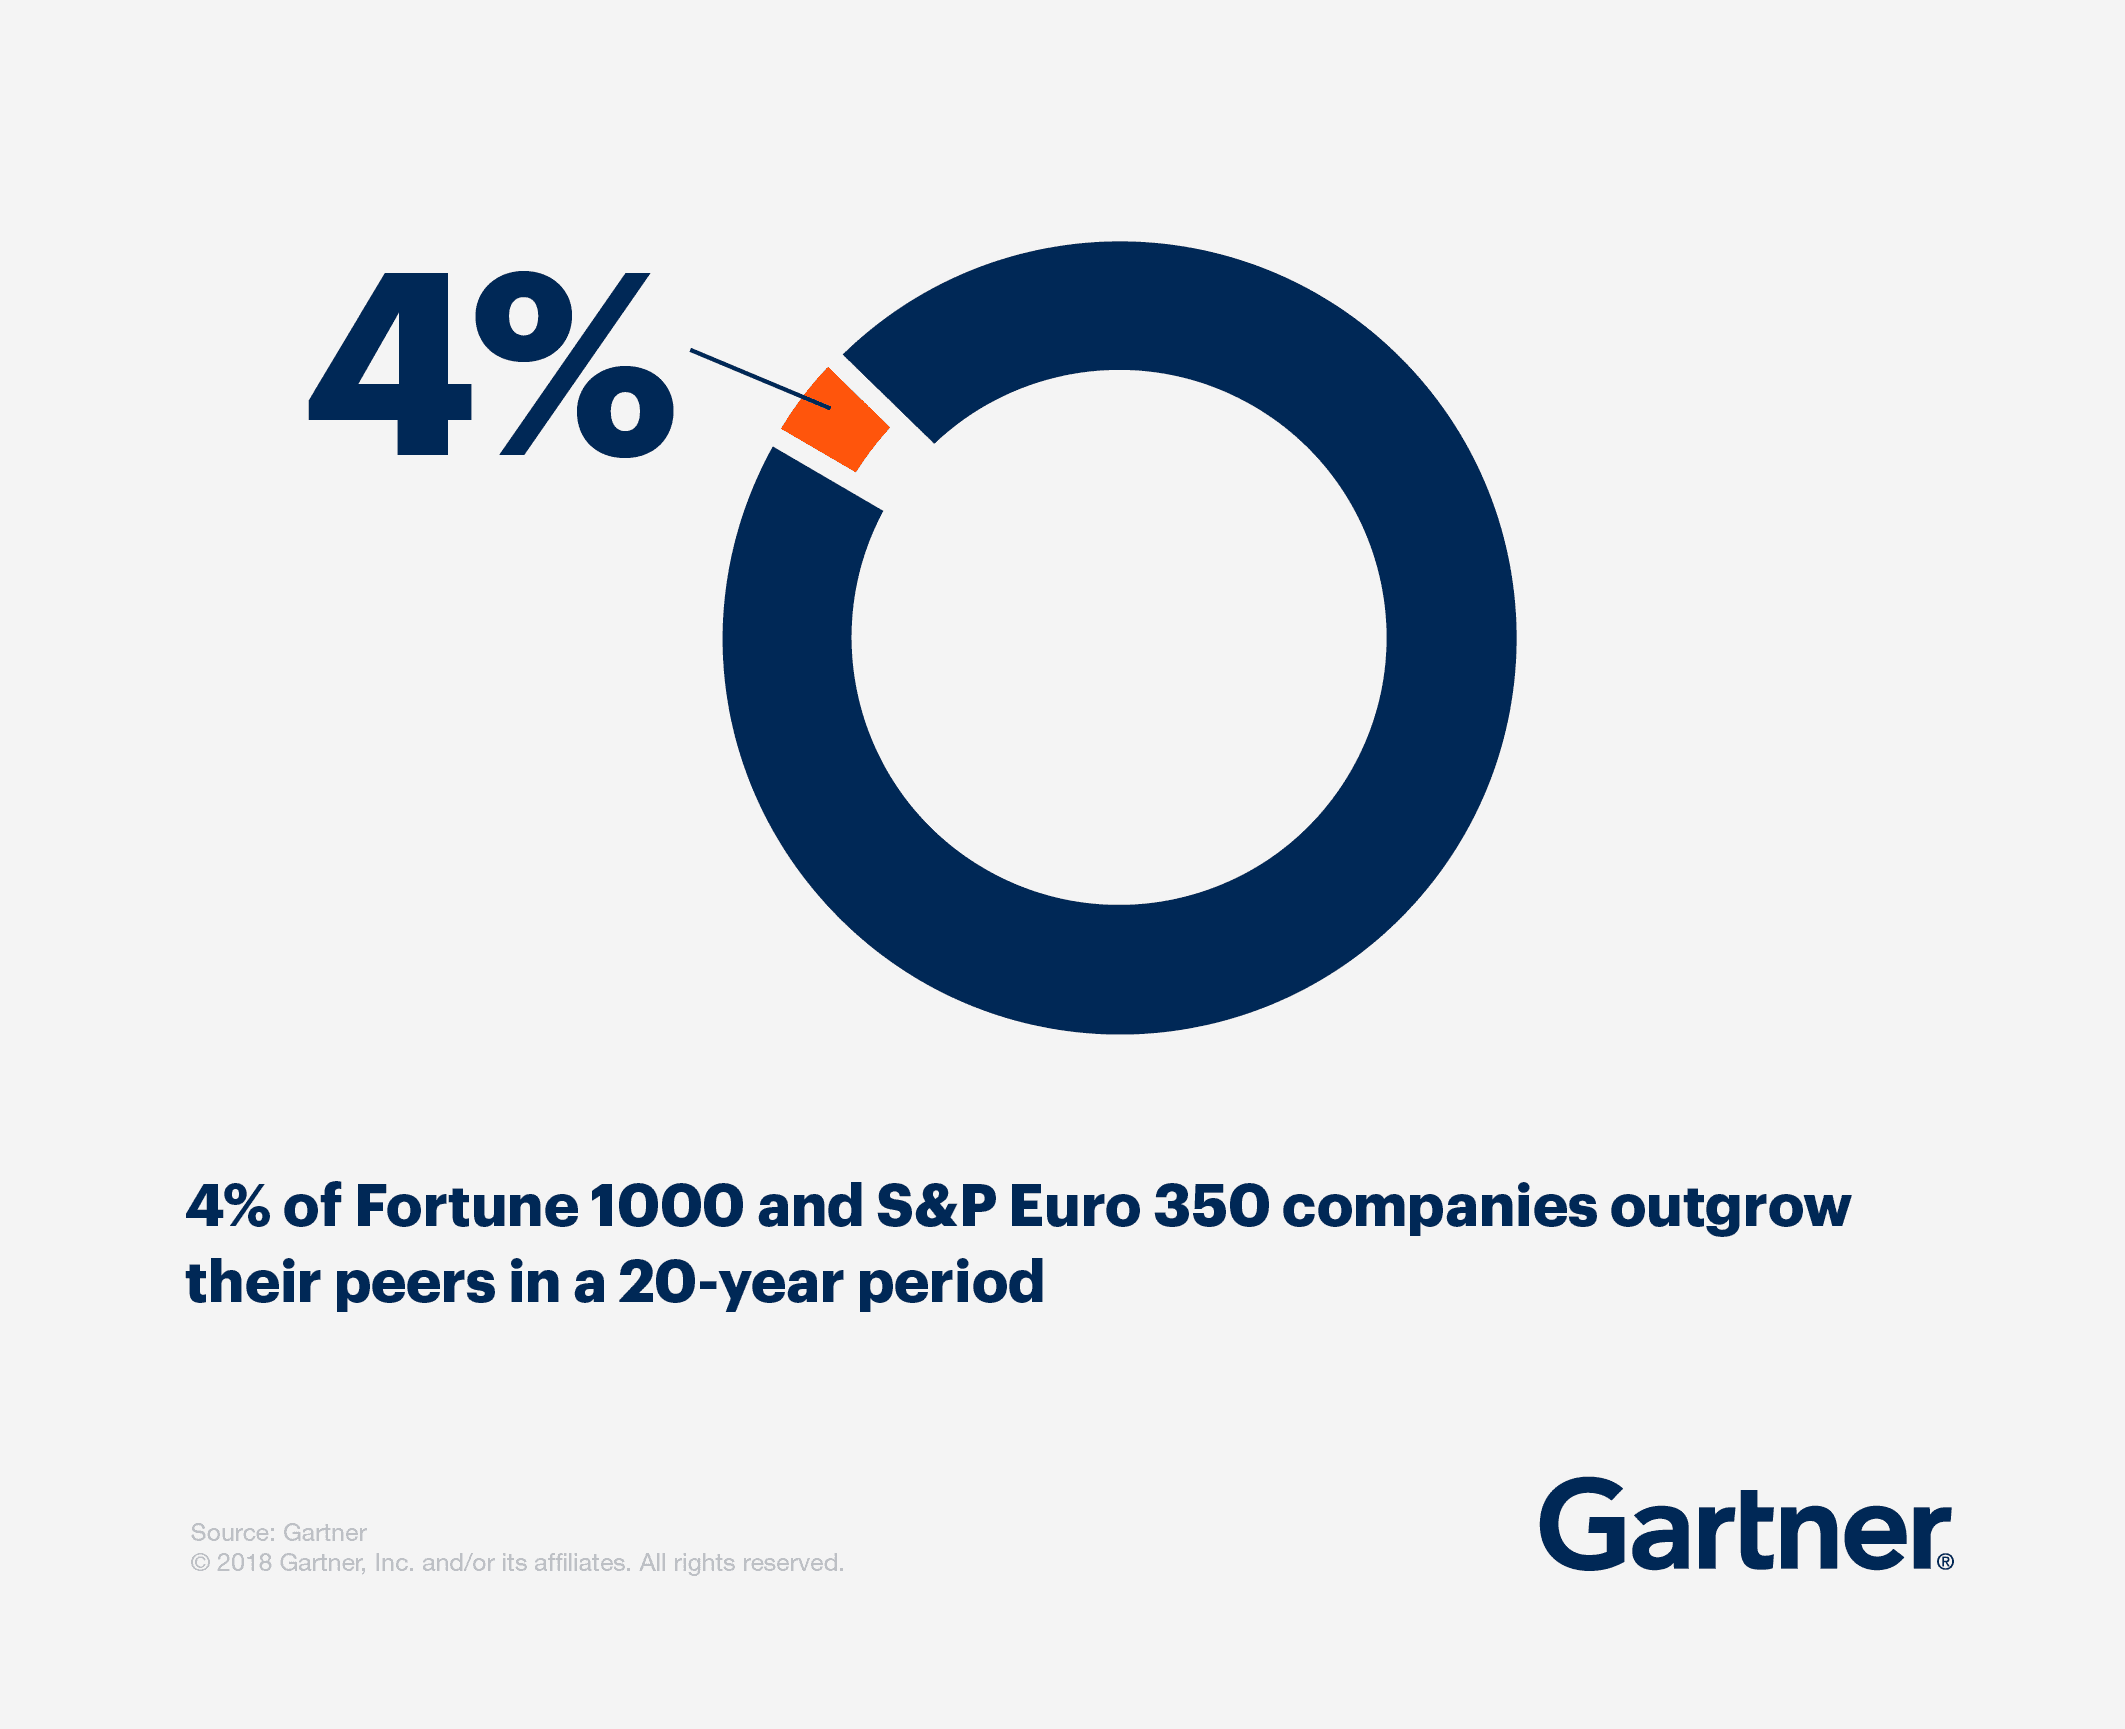 4% of Fortune 1000 and S&P Euro 350 companies outgrow their peers in a 20 year period